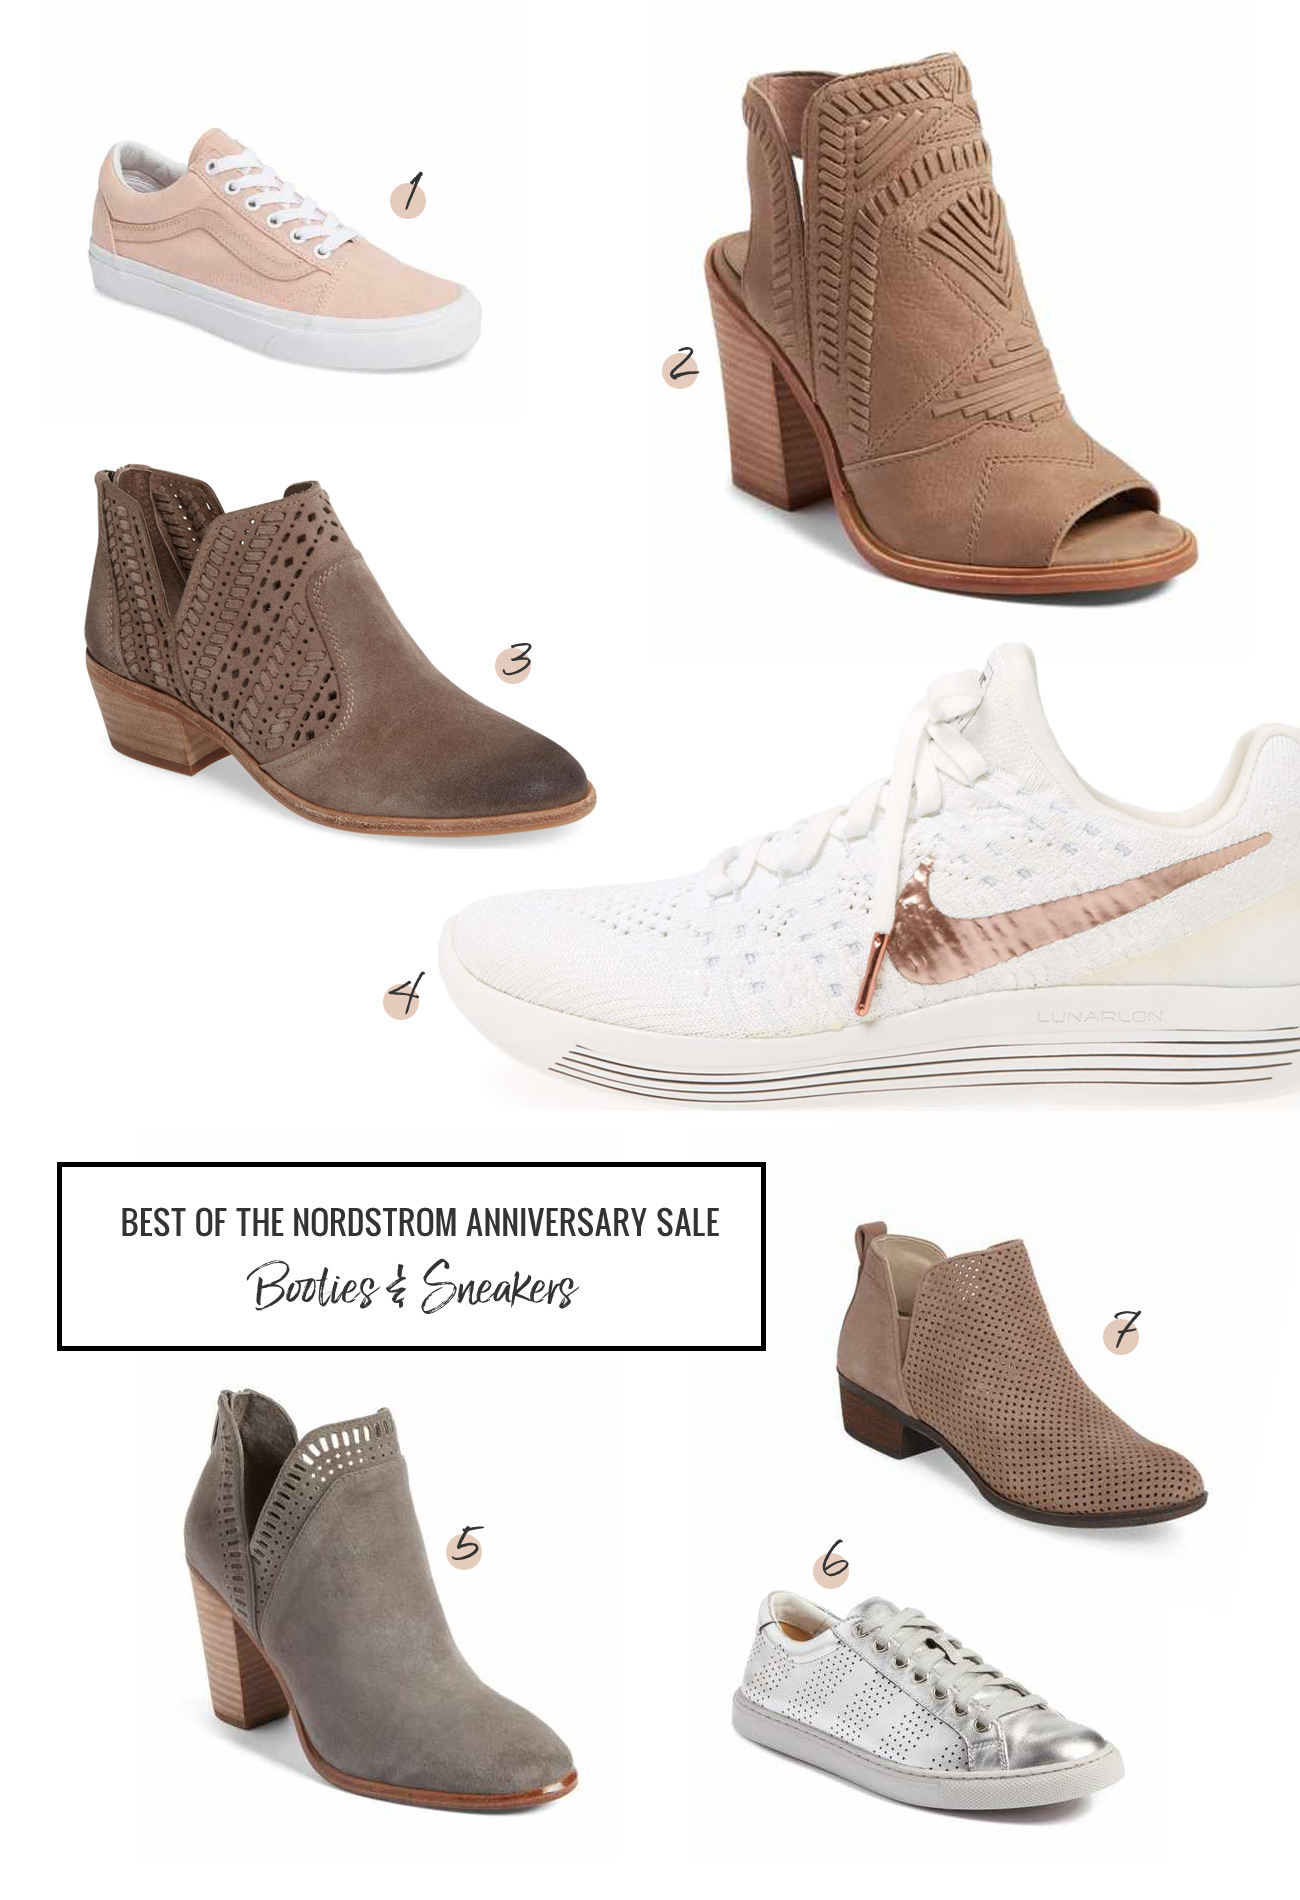 Nordstrom Anniversary Sale Our Shoe Picks Green Wedding Shoes Weddings